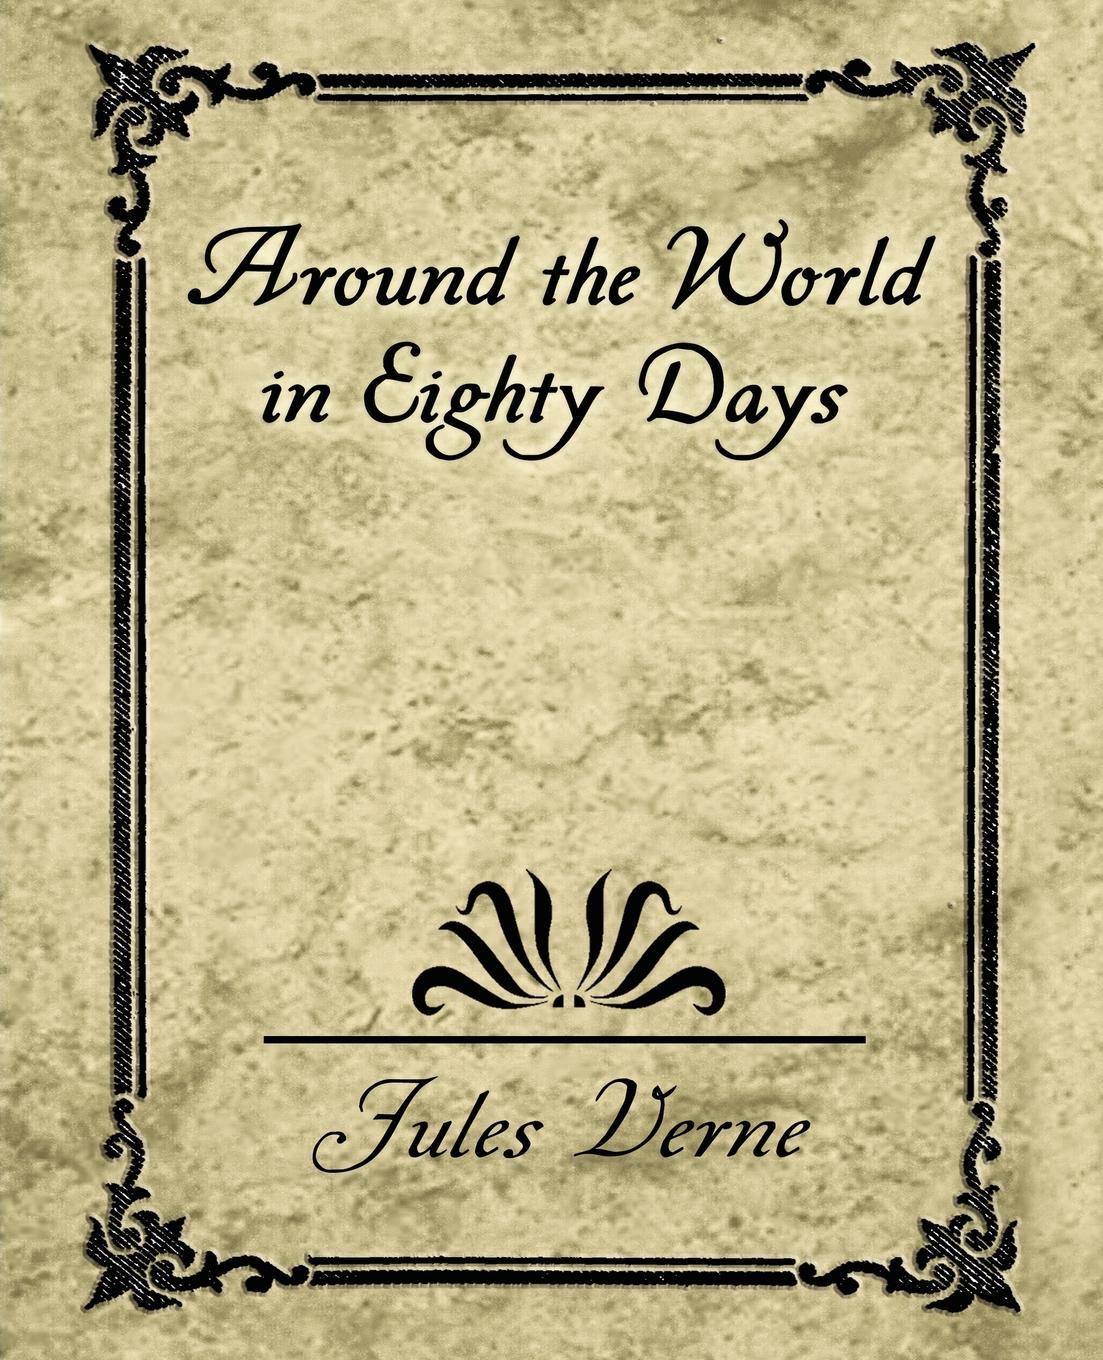 Verne Jules Verne, Jules Verne, Jules Verne Around the World in Eighty Days шкаф двустворчатый etagerca jules verne jv27etgyb